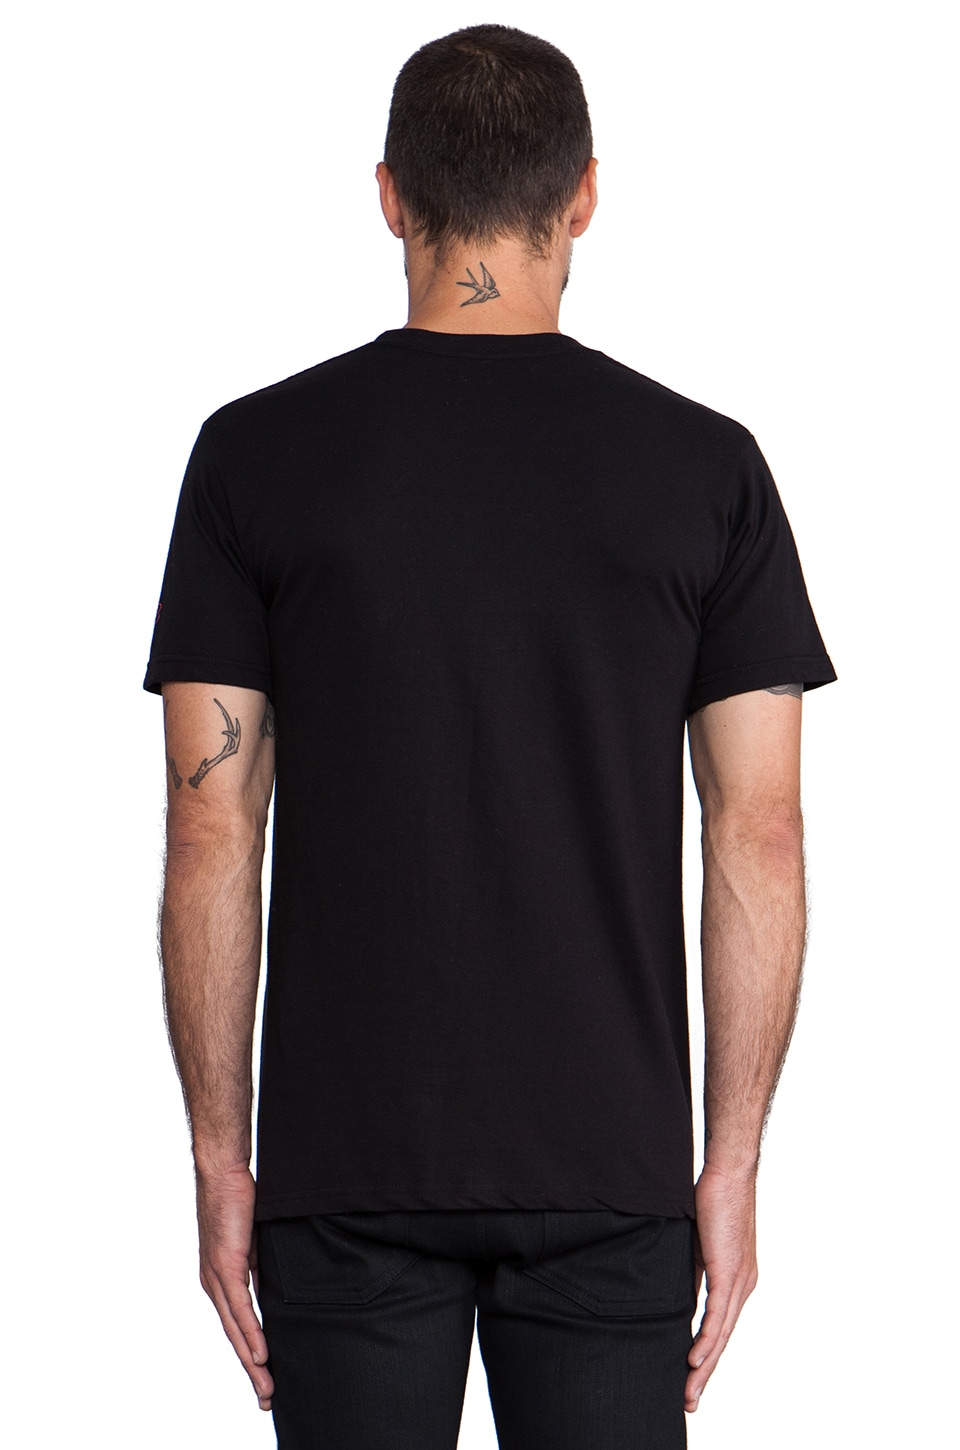 SSUR Misfit Tee in Black/White